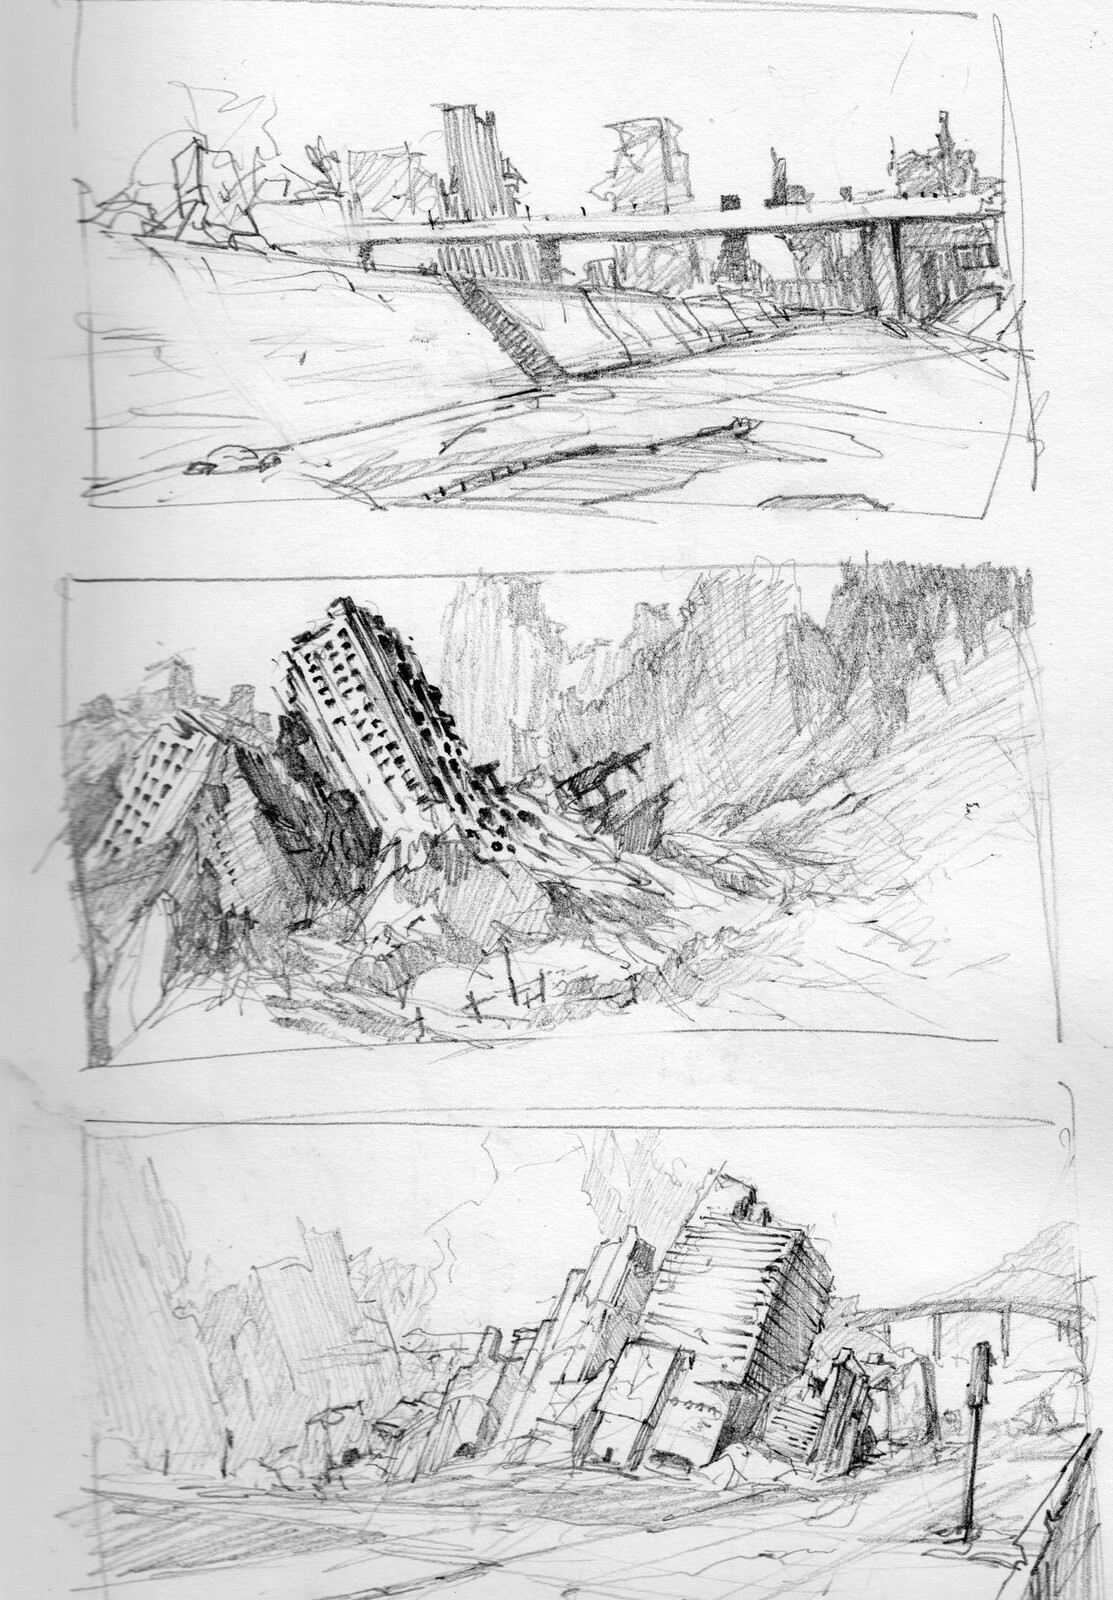 Sketches #1